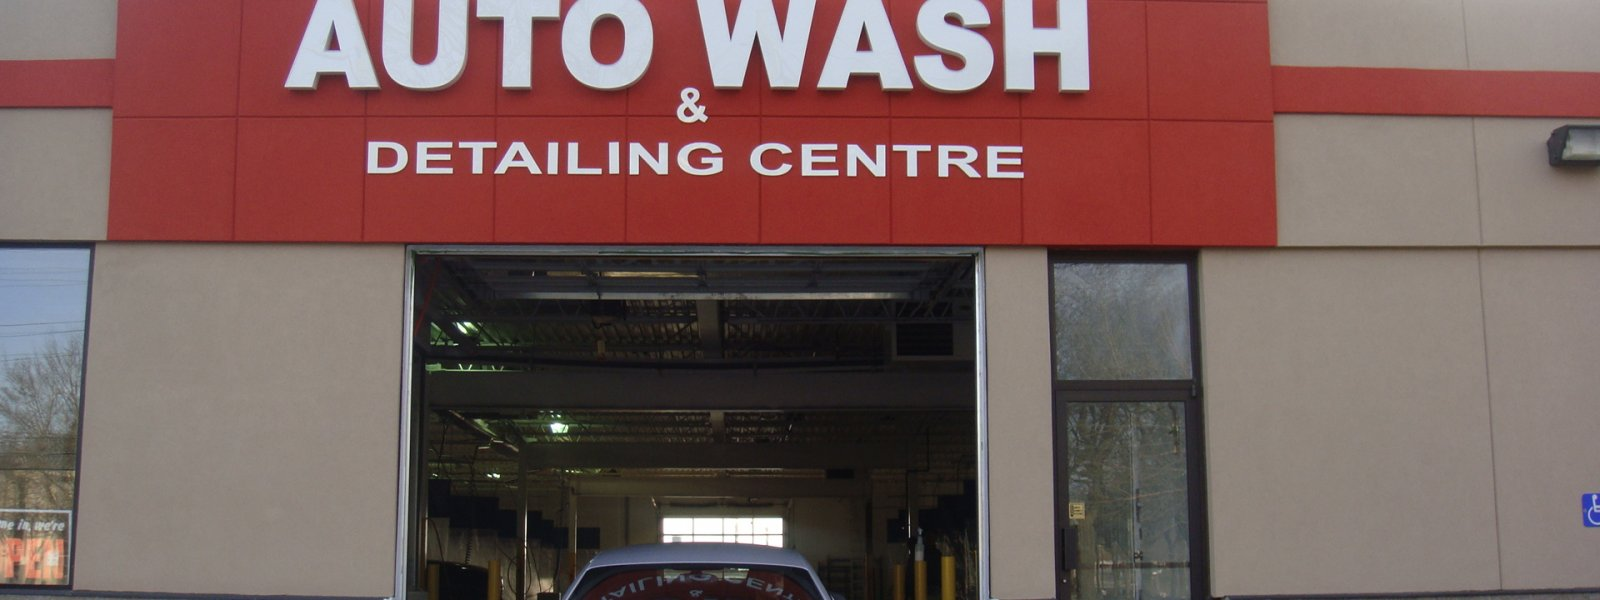 Midland coin car wash 55 1 review 1566 midland ave midland coin car wash 55 1 review 1566 midland ave scarborough on n49 solutioingenieria Gallery